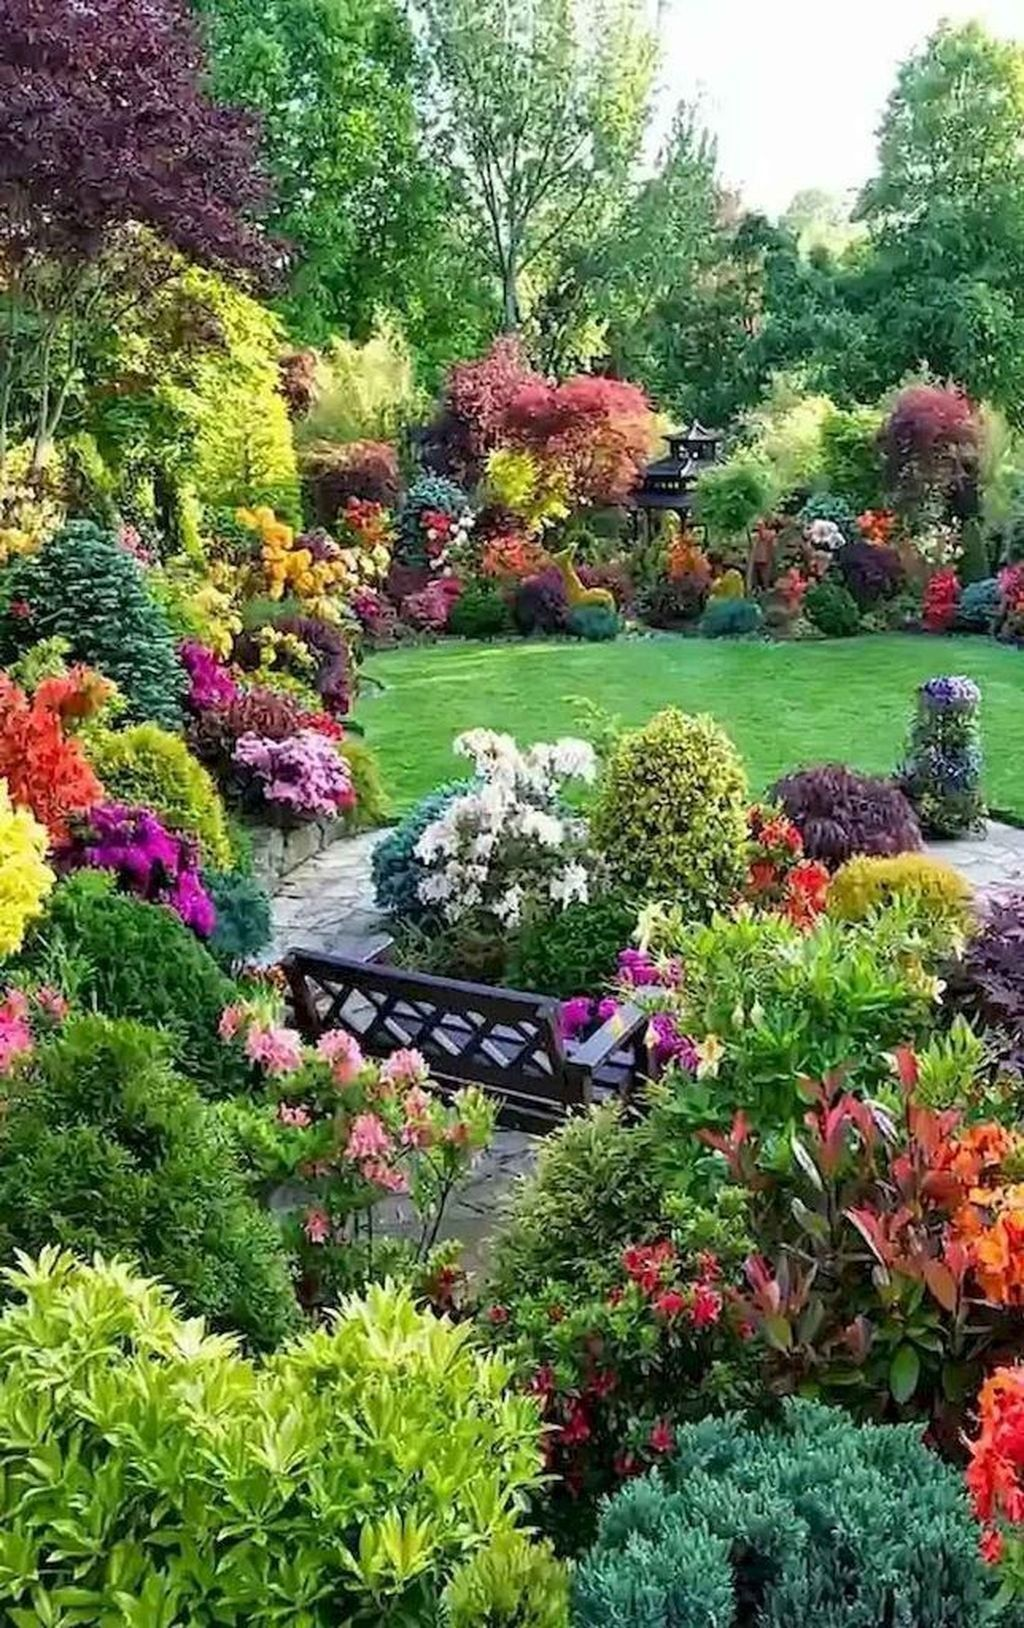 32 Lovely Flower Garden Design Ideas To Beautify Your Outdoor Front Yard Landscaping Design Beautiful Gardens Front Yard Landscaping